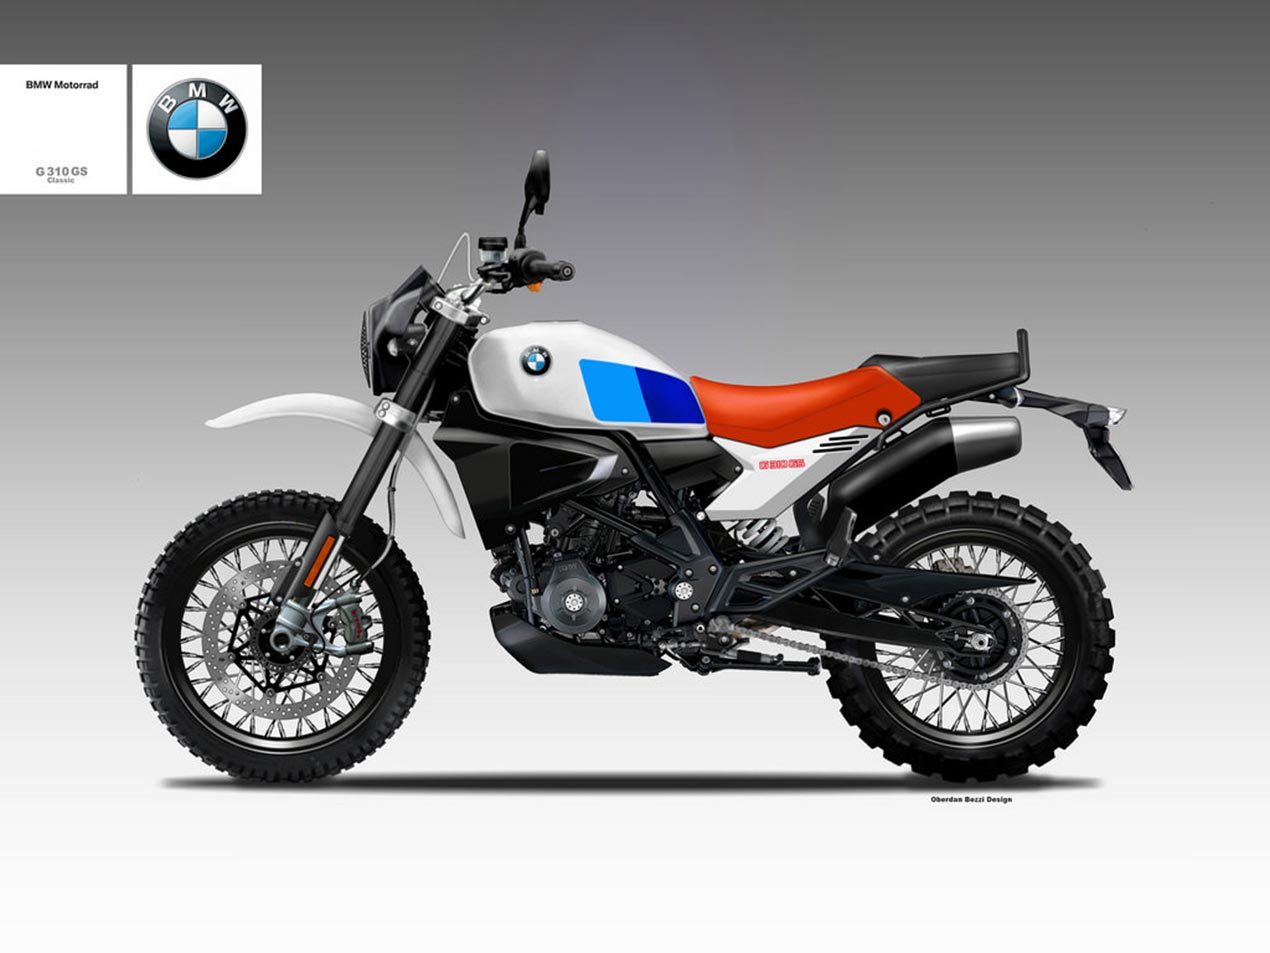 bmw motorrad archives - page 2 of 24 - asphalt & rubber